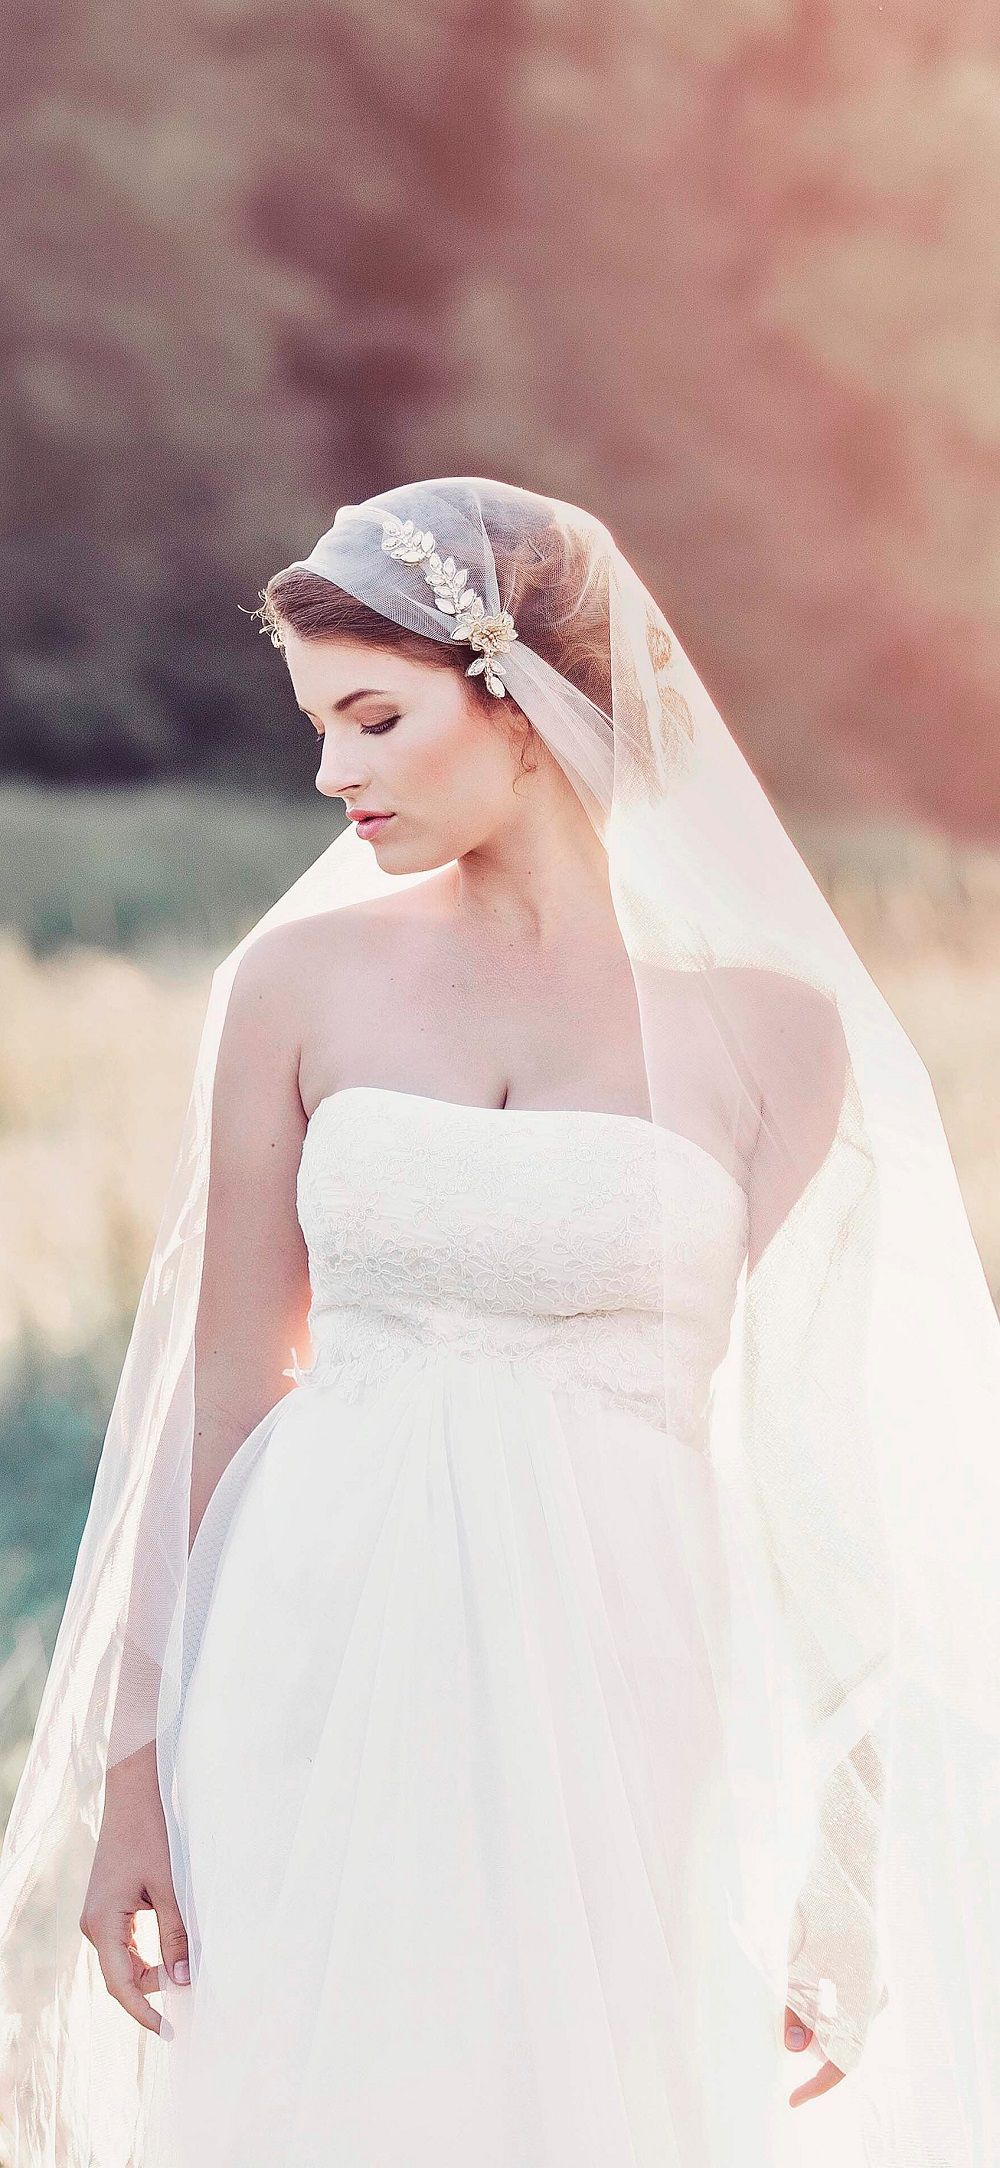 Buy Vintage Exclusive veil for beautiful bridals pictures trends